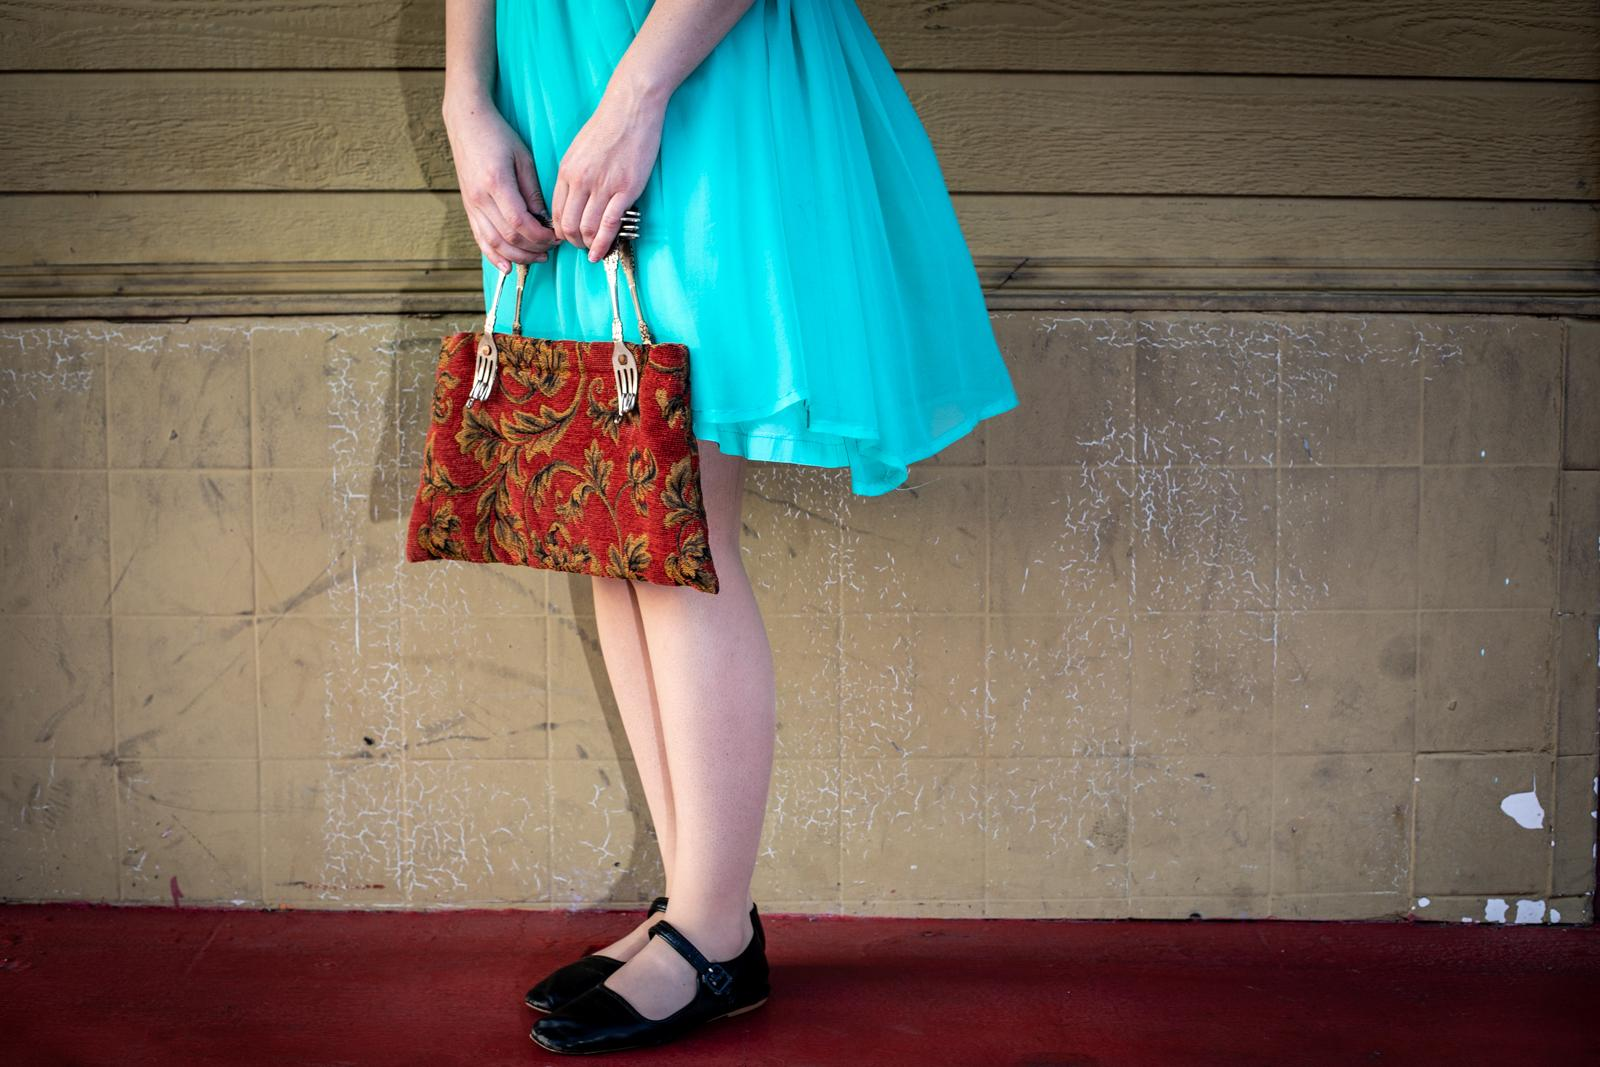 Elizabeth Messick, 29, stands with her magic purse in an alley in Los Angeles Chinatown.